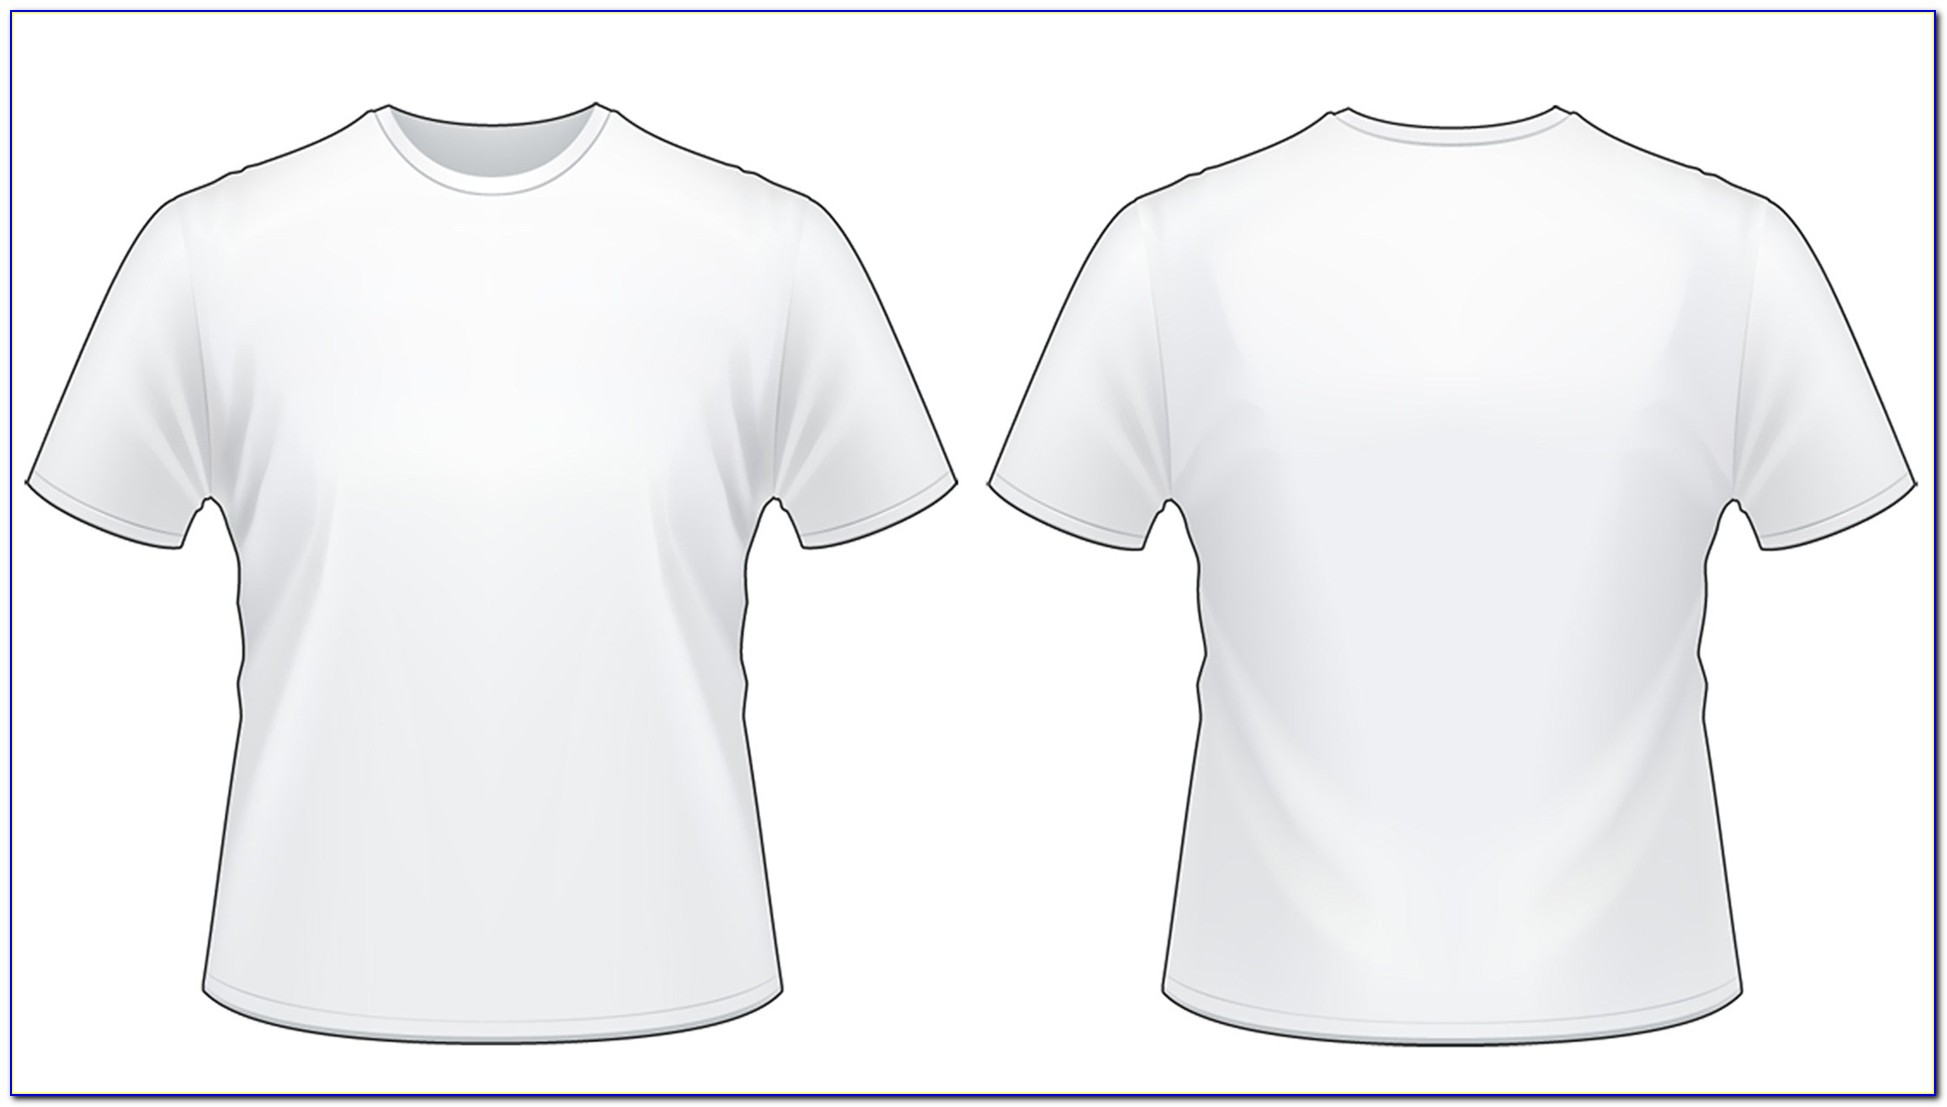 Tee Shirt Templates For Photoshop